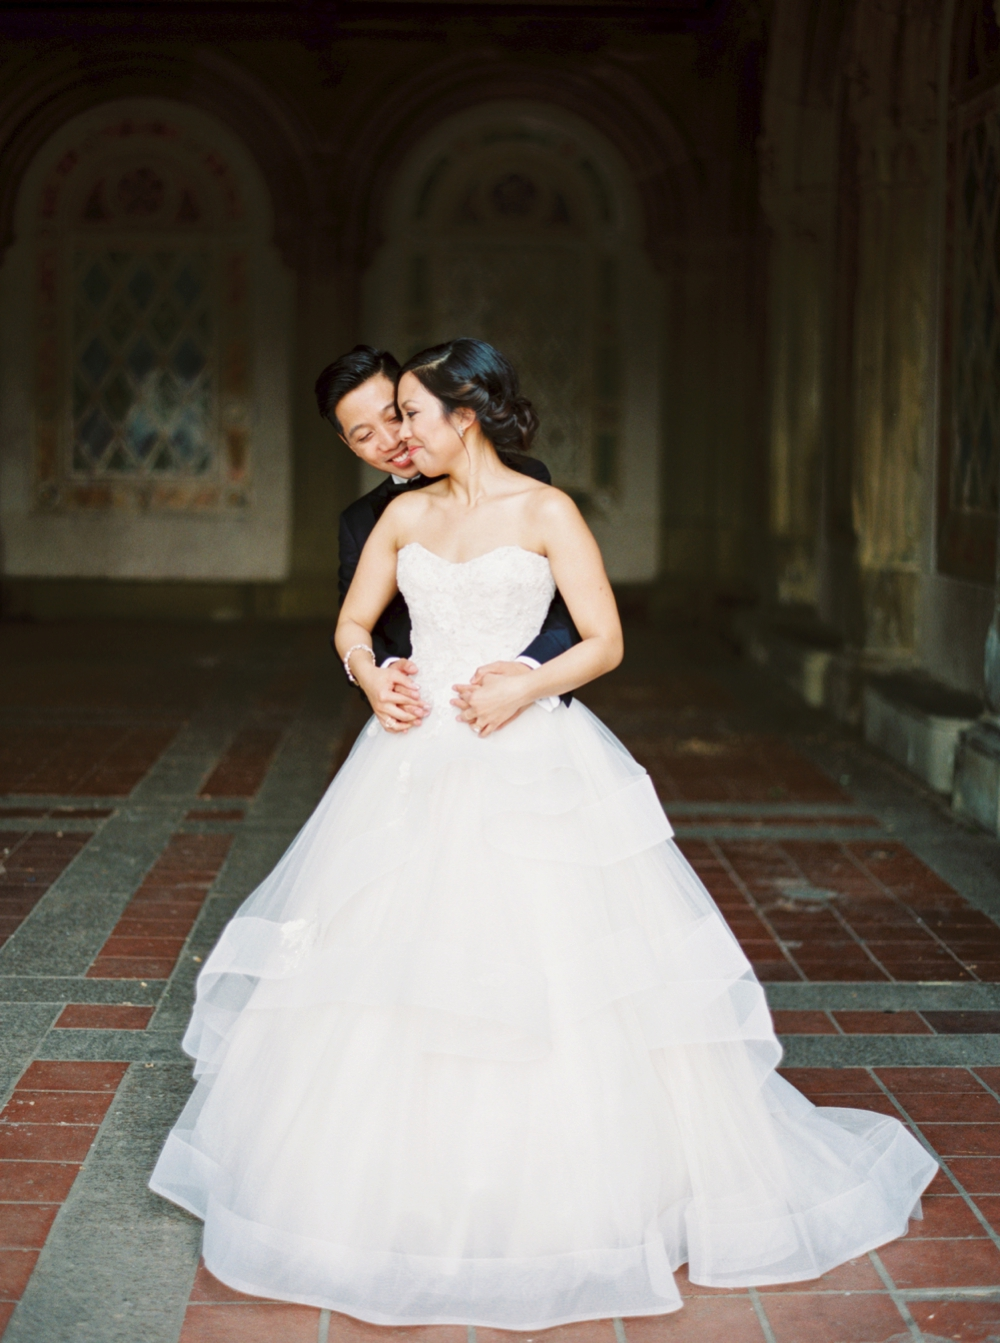 New York City Wedding | The Boat House Wedding Reception | Central Park Wedding Photographer | Calgary Wedding Photographers | Church Wedding